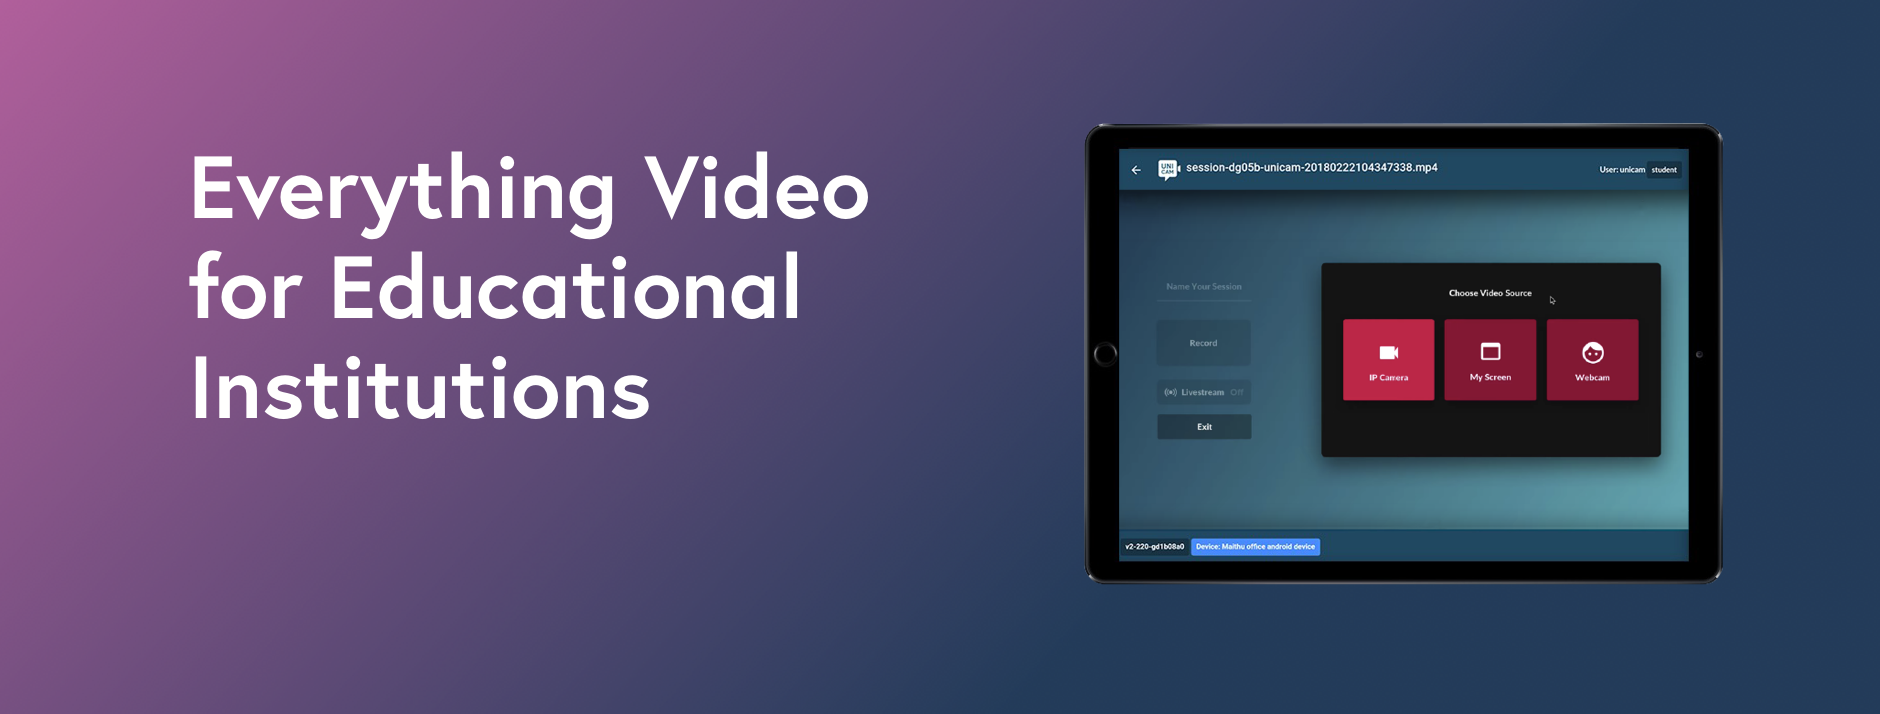 Everything Video for Educational Insitutions